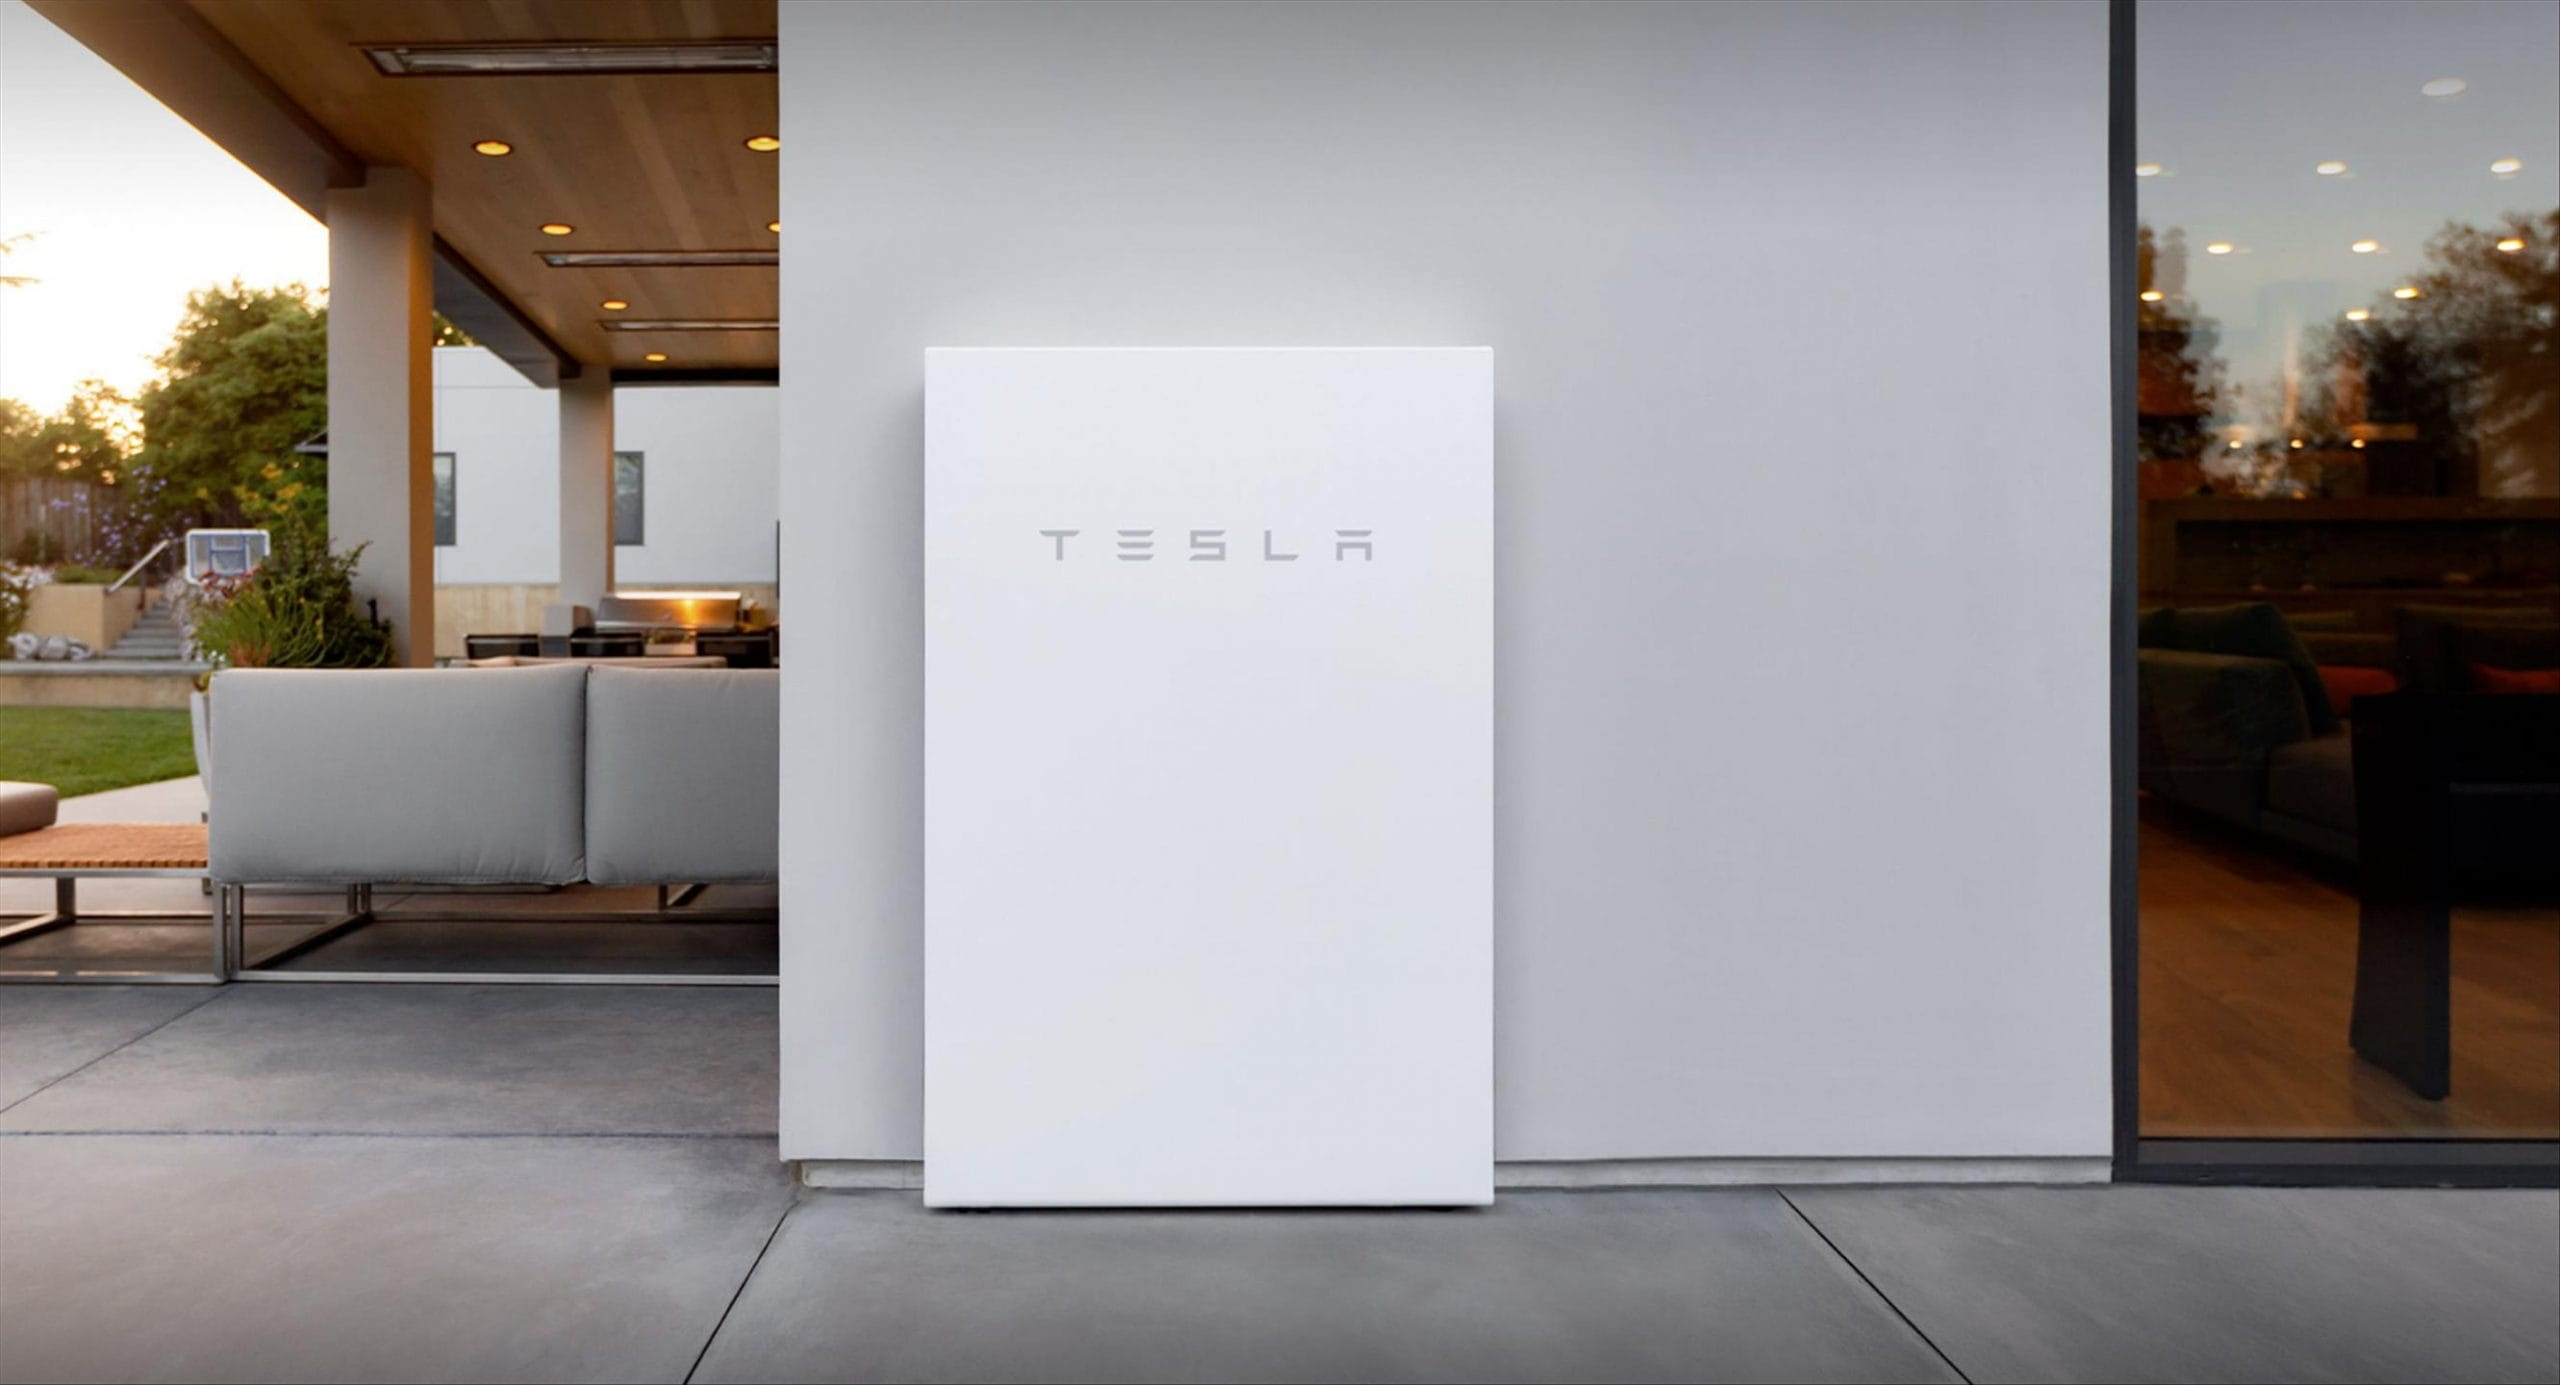 Time to grab that Tesla Powerwall Battery? AGL just expanded their Virtual Power Plant program to other states